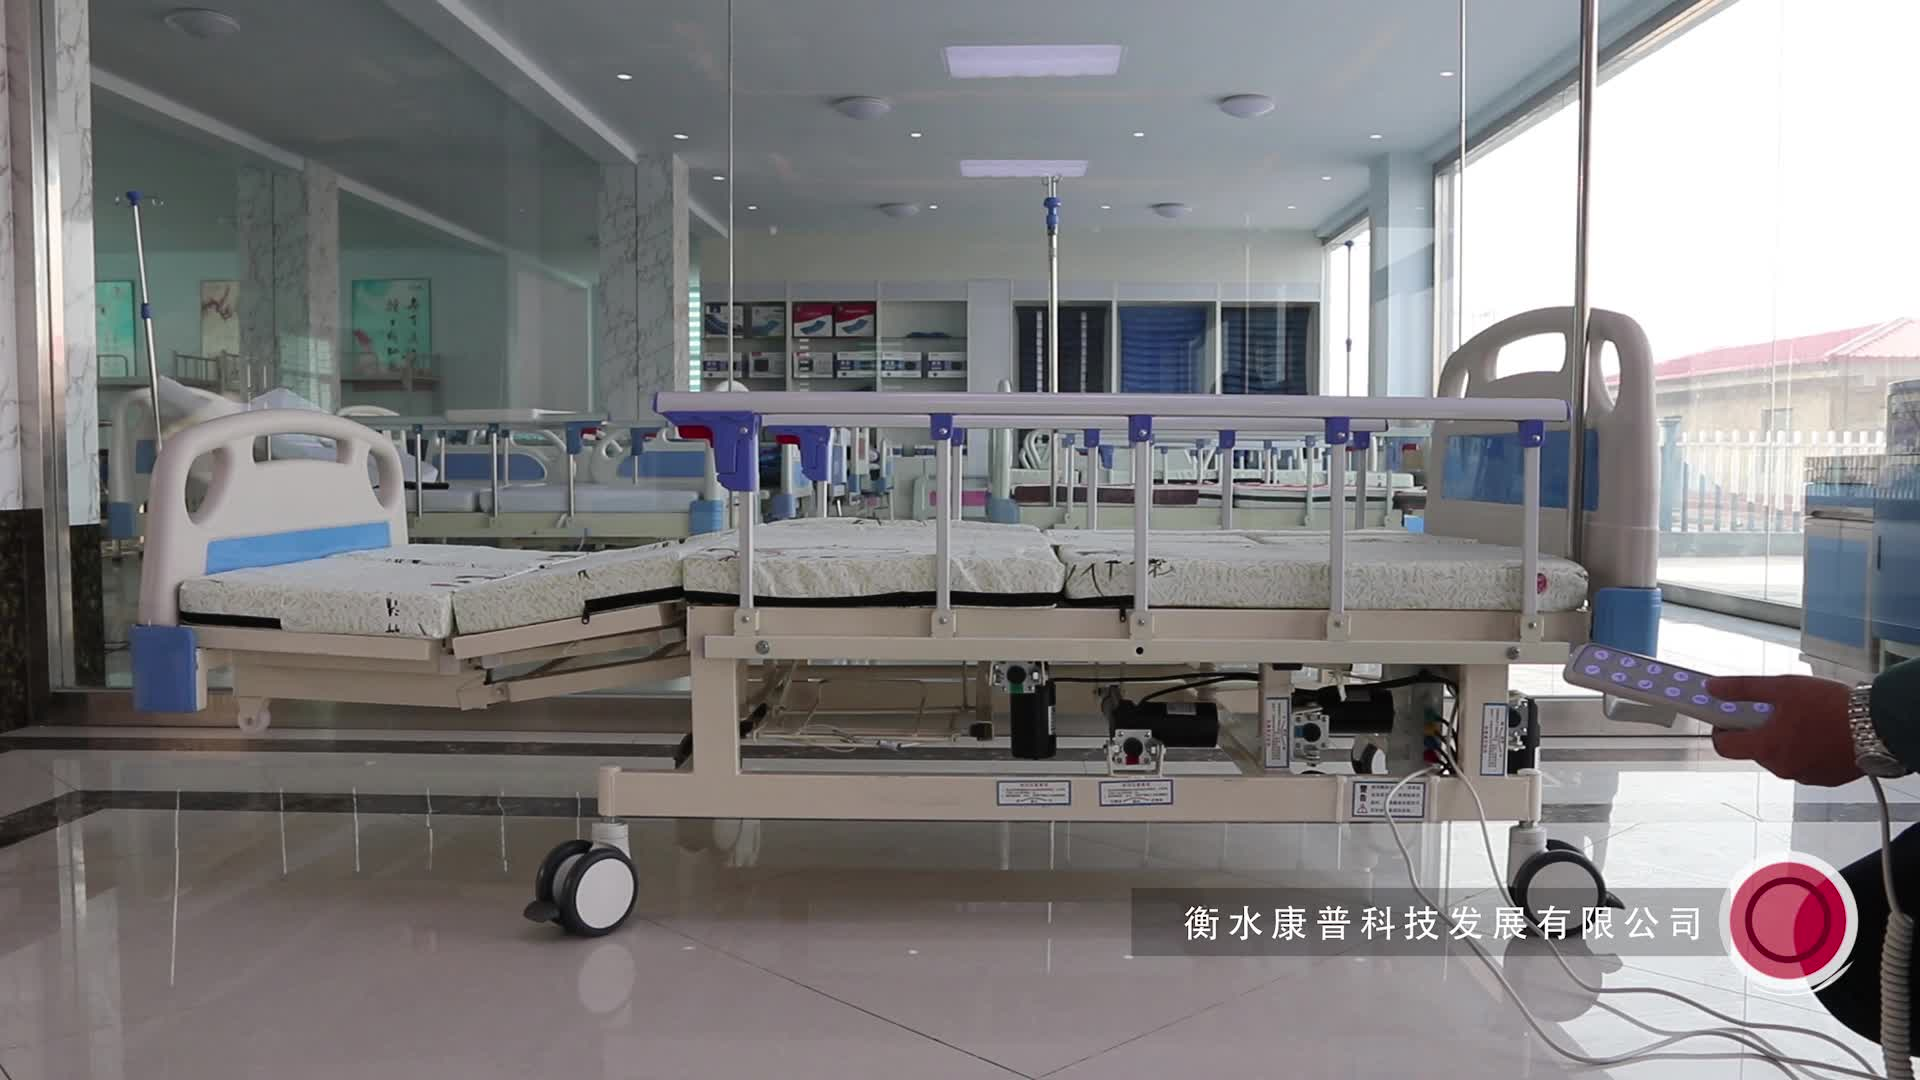 Cheap Muiti Functions Adjustable Electric Hospital Bed For Patient Used